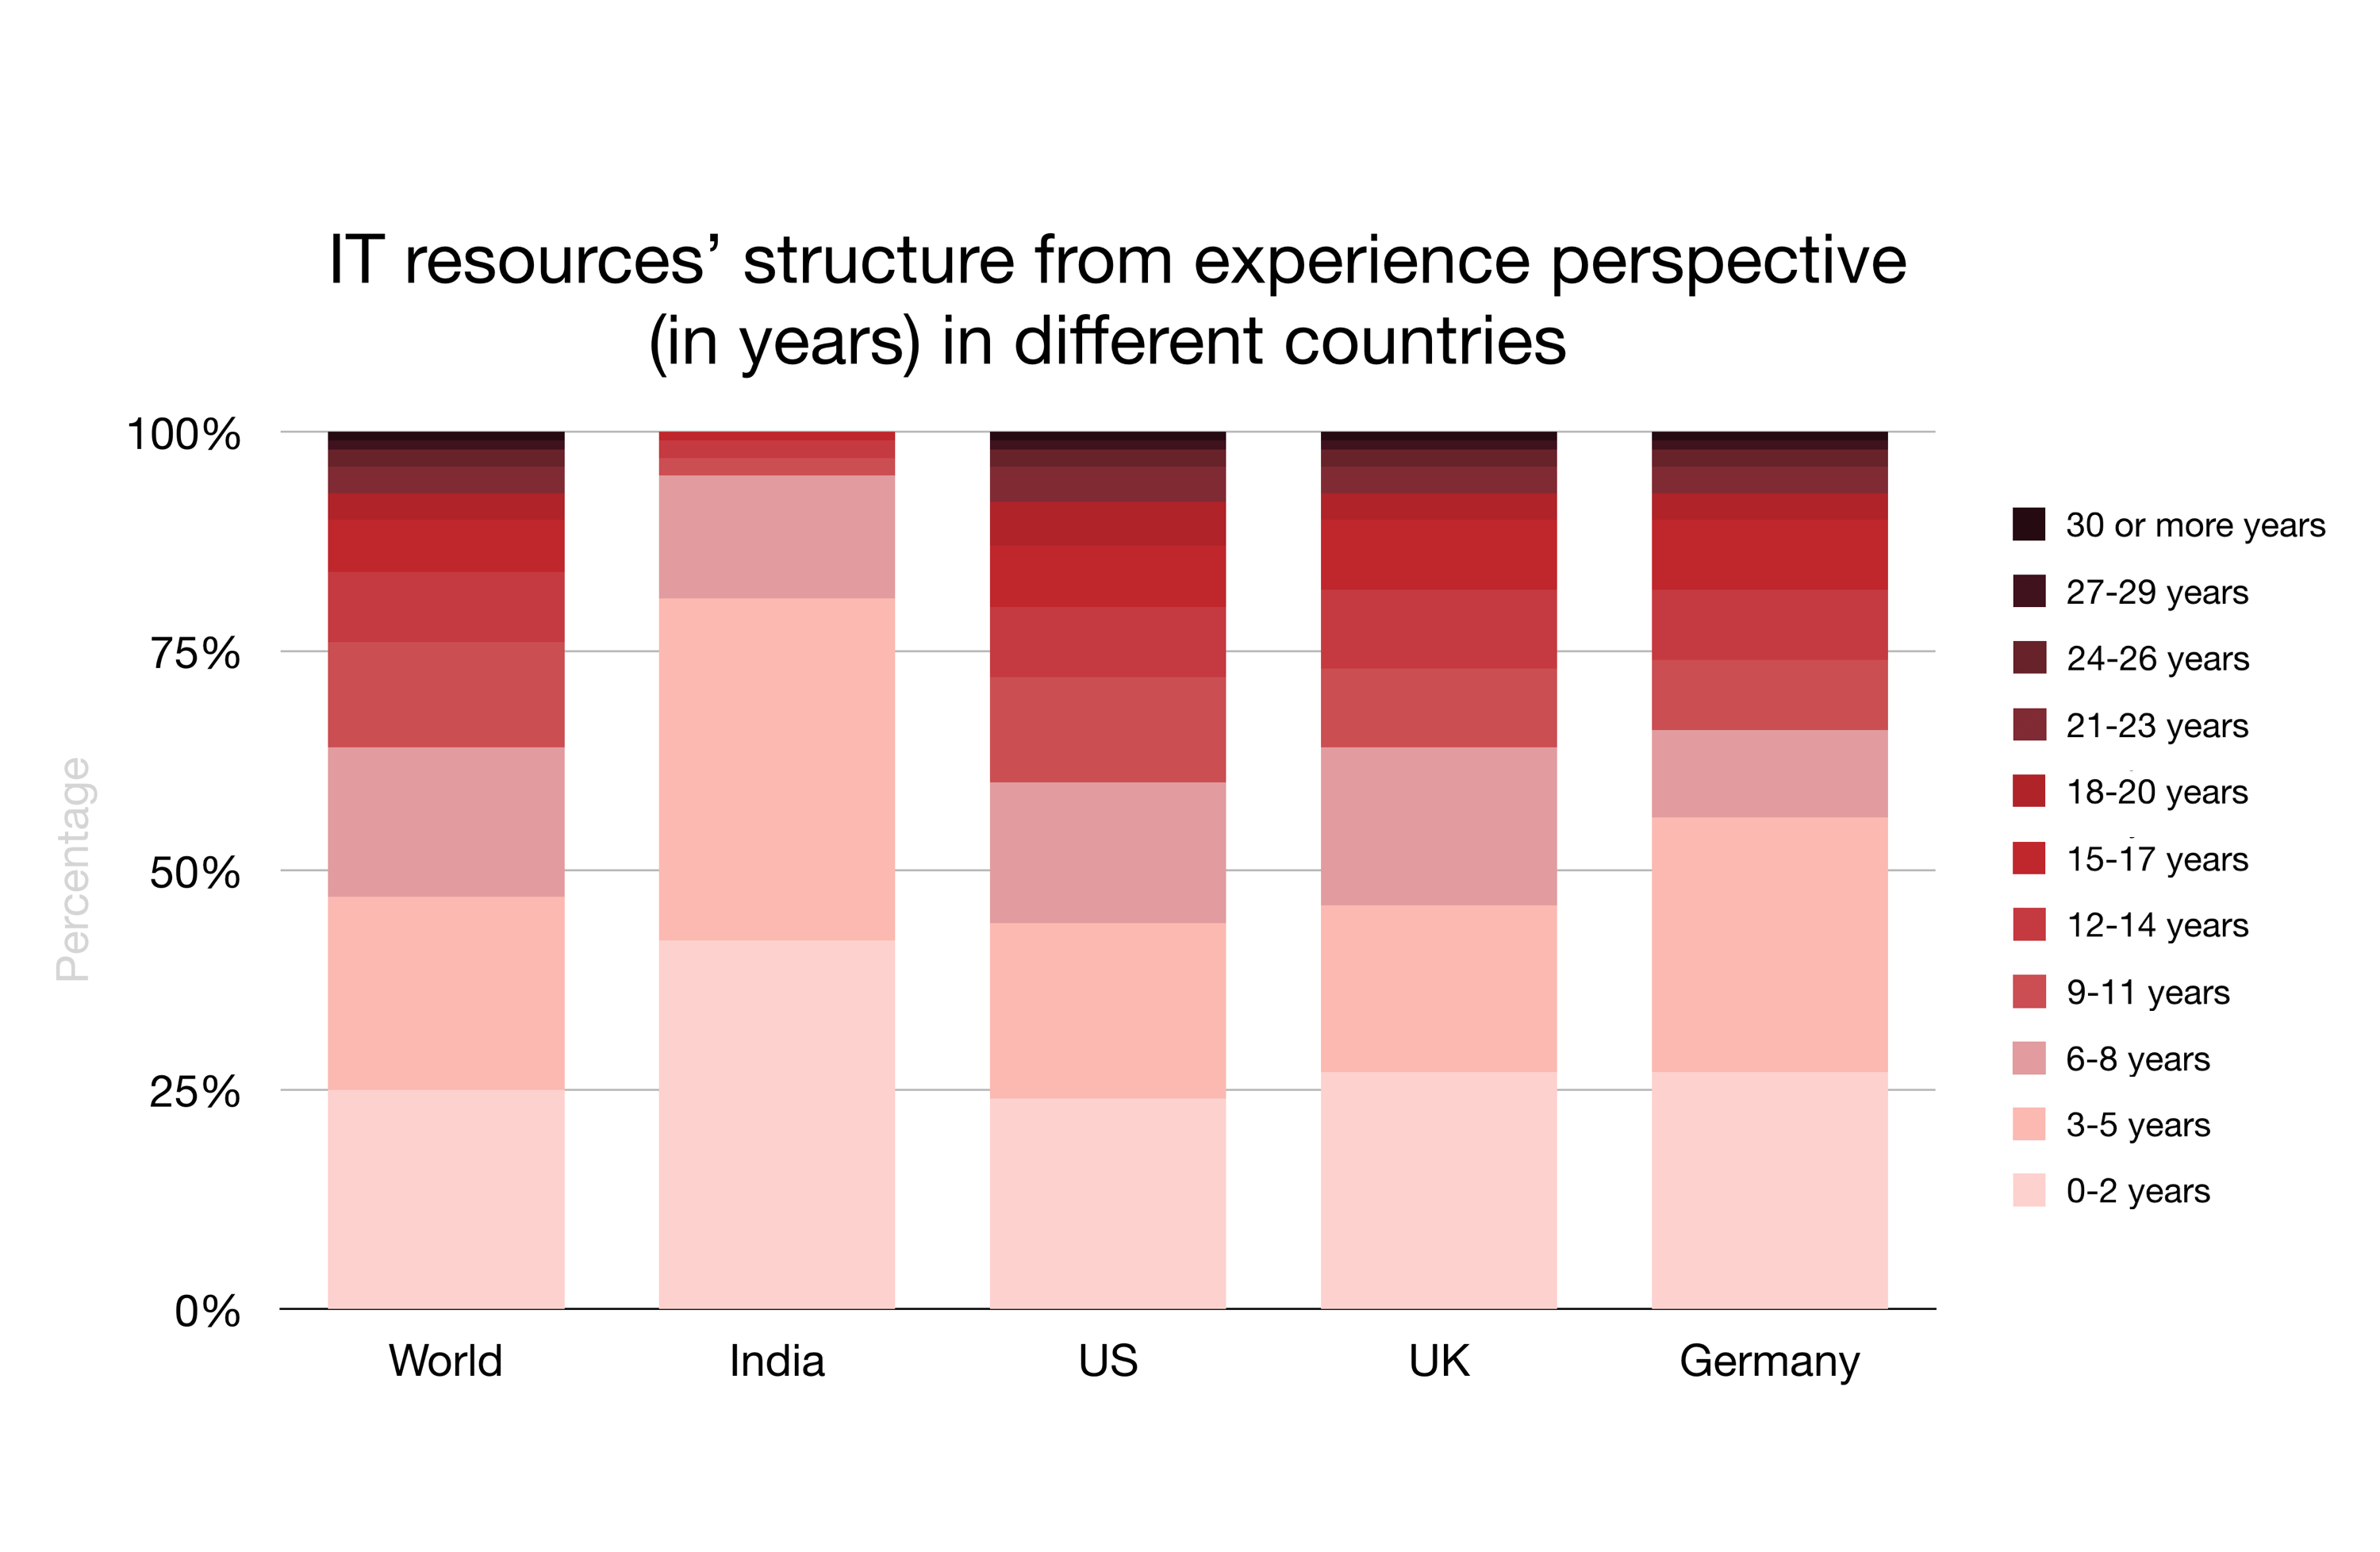 IT resources' structure from experience perspective (in years) in different countries